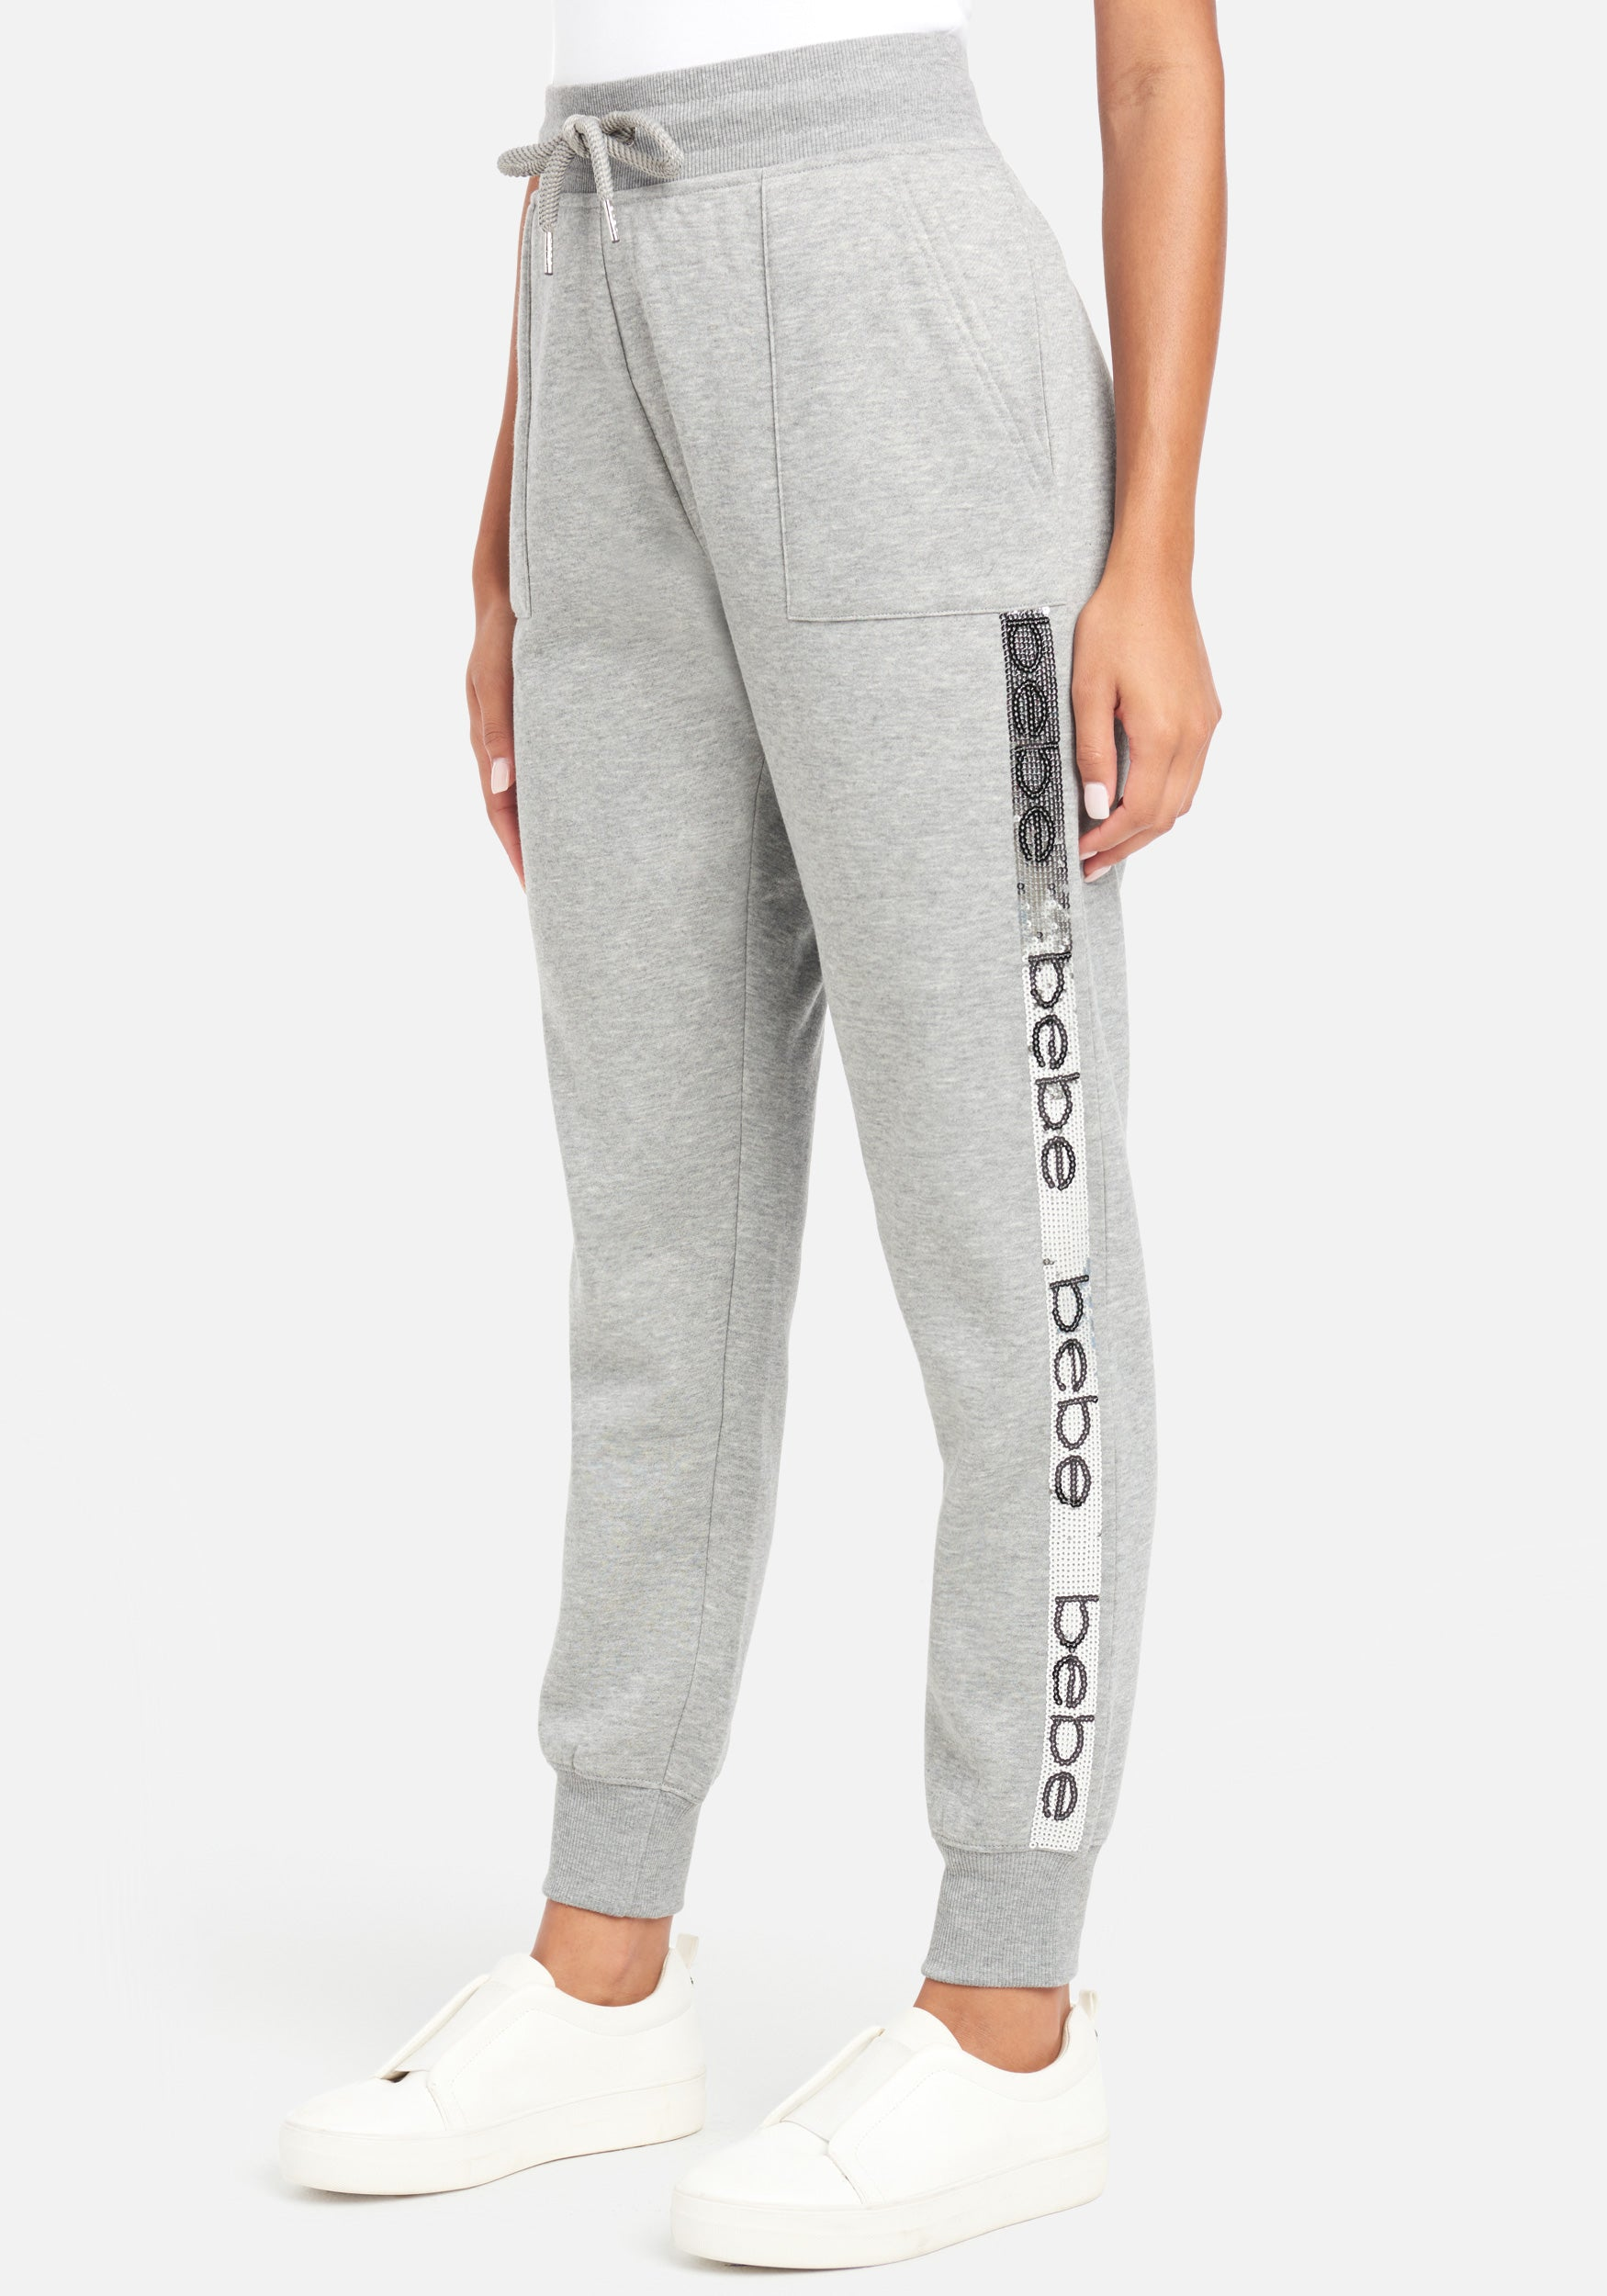 Women's Bebe Sequin Stripe Jogger Pant, Size Small in Heather Grey